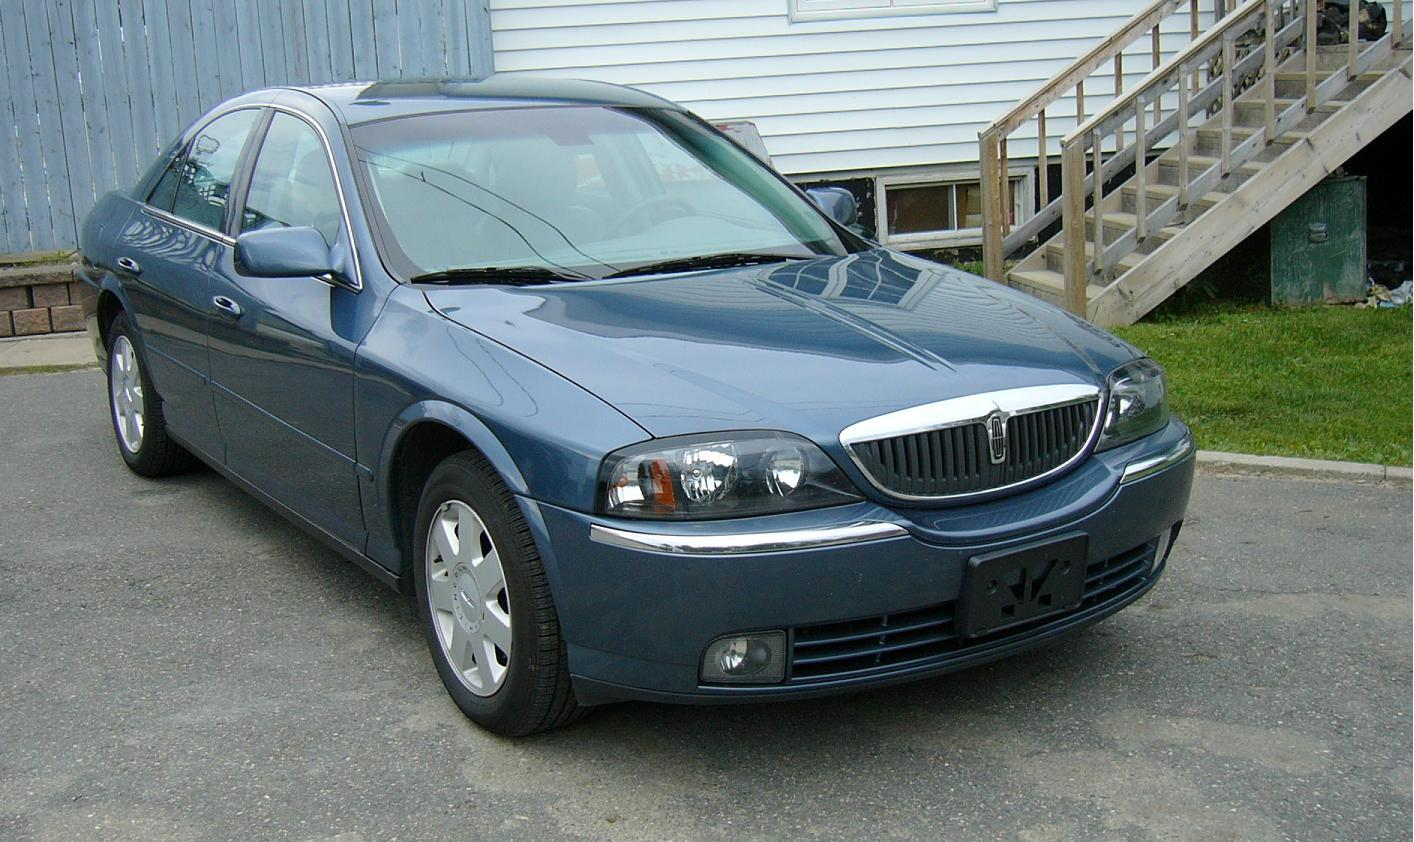 2005 Lincoln Ls V6 1 4 Mile Trap Speeds 0 60 Dragtimes Com